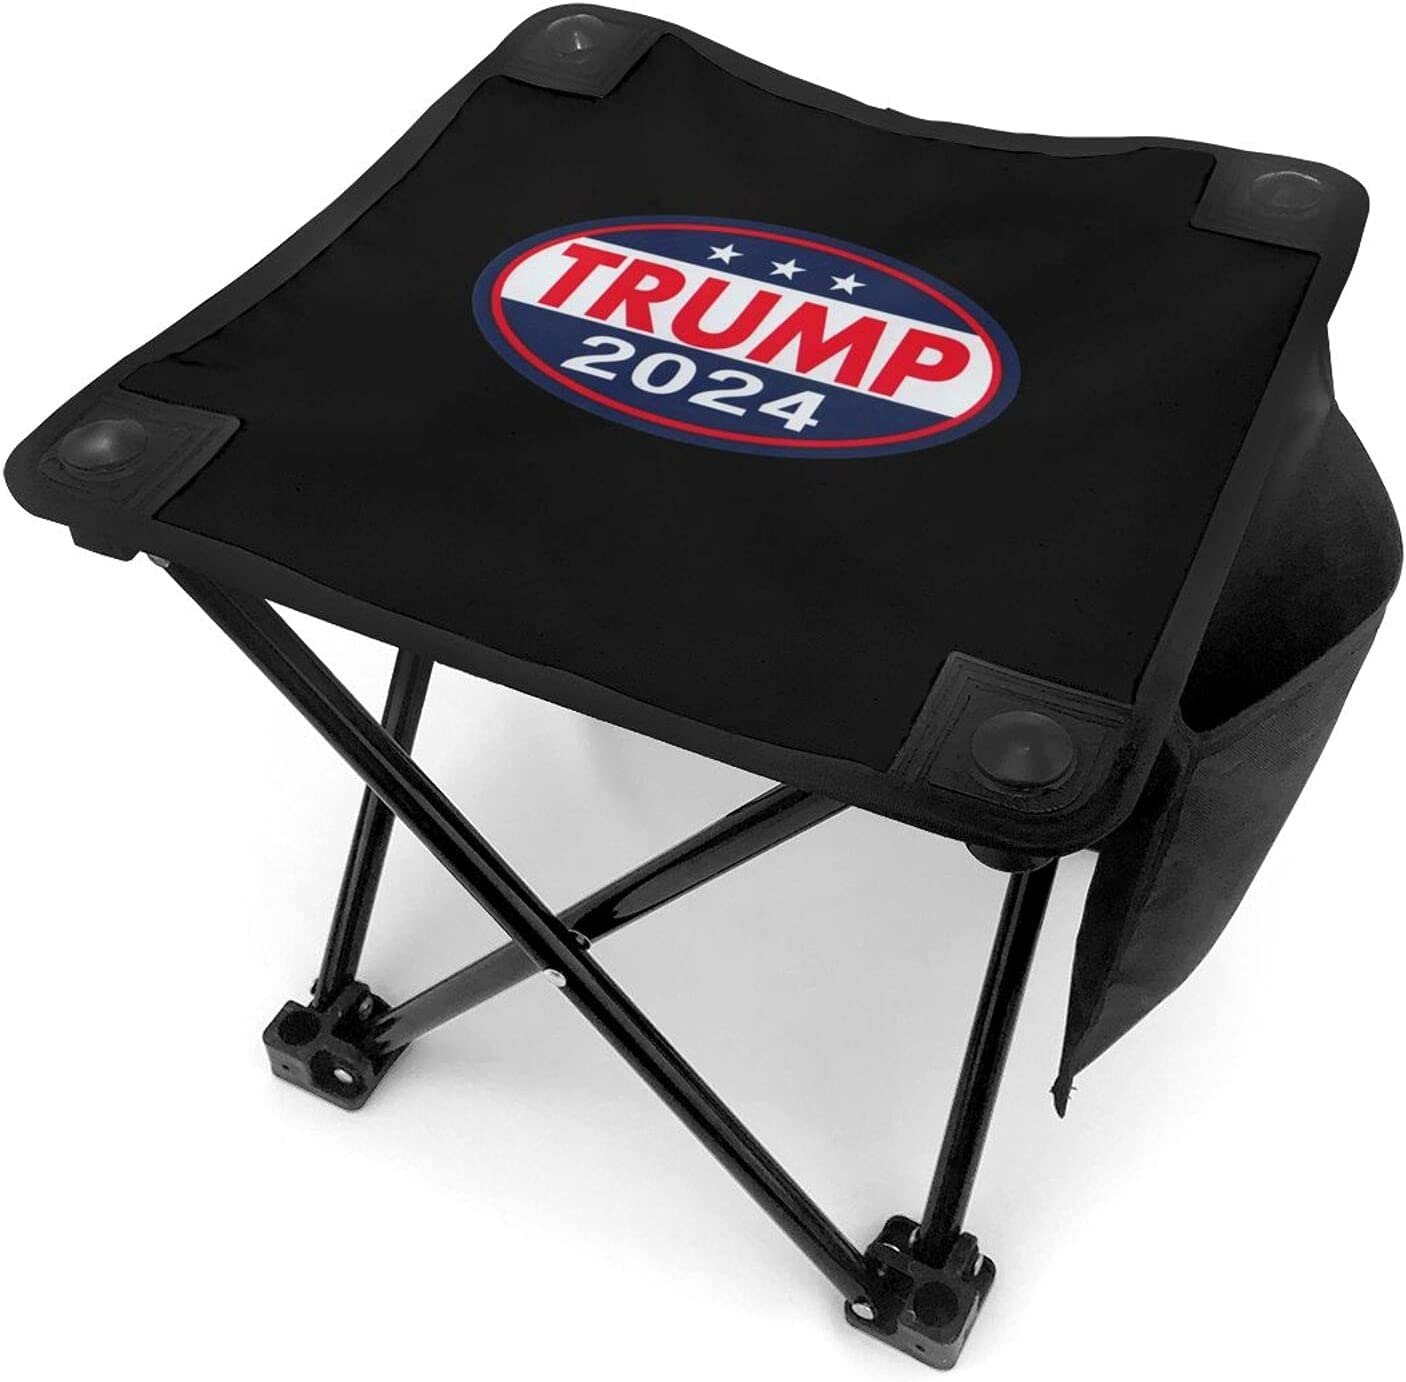 Trump 2024 Folding Camping Stool Portable Fishing Slacker Chair Mini Foldable Stool for Outdoor Backpacking Hiking BBQ Picnic Travel Gardening and Beach with Carry Bag